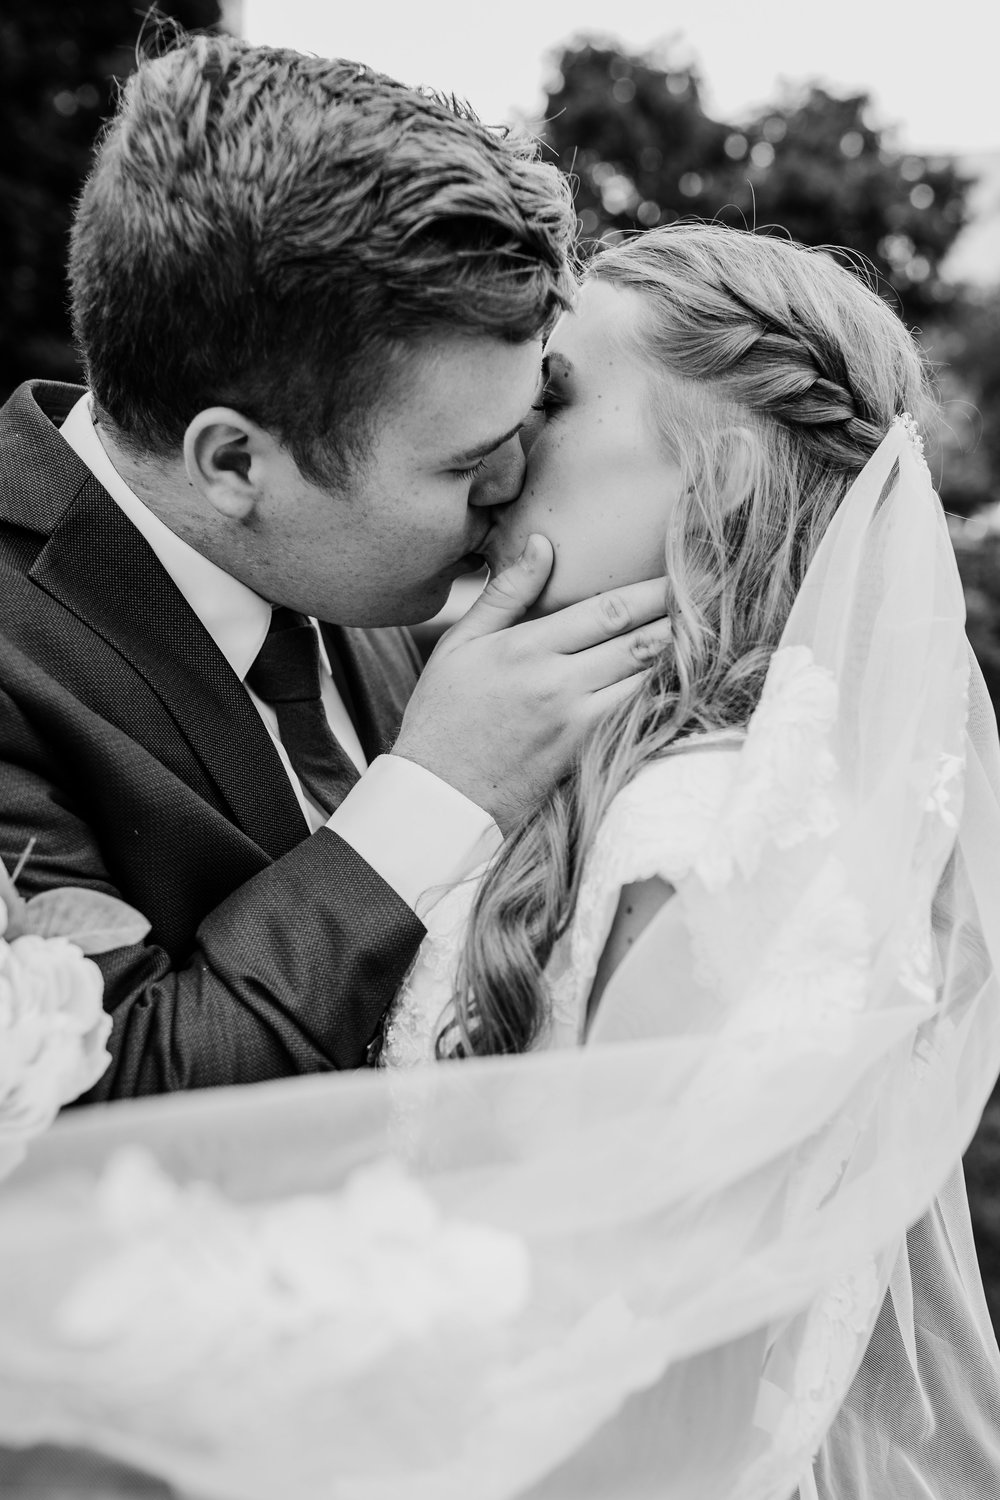 best wedding photographer in lakewood colorado kissing bride and groom billowy wedding veil lds